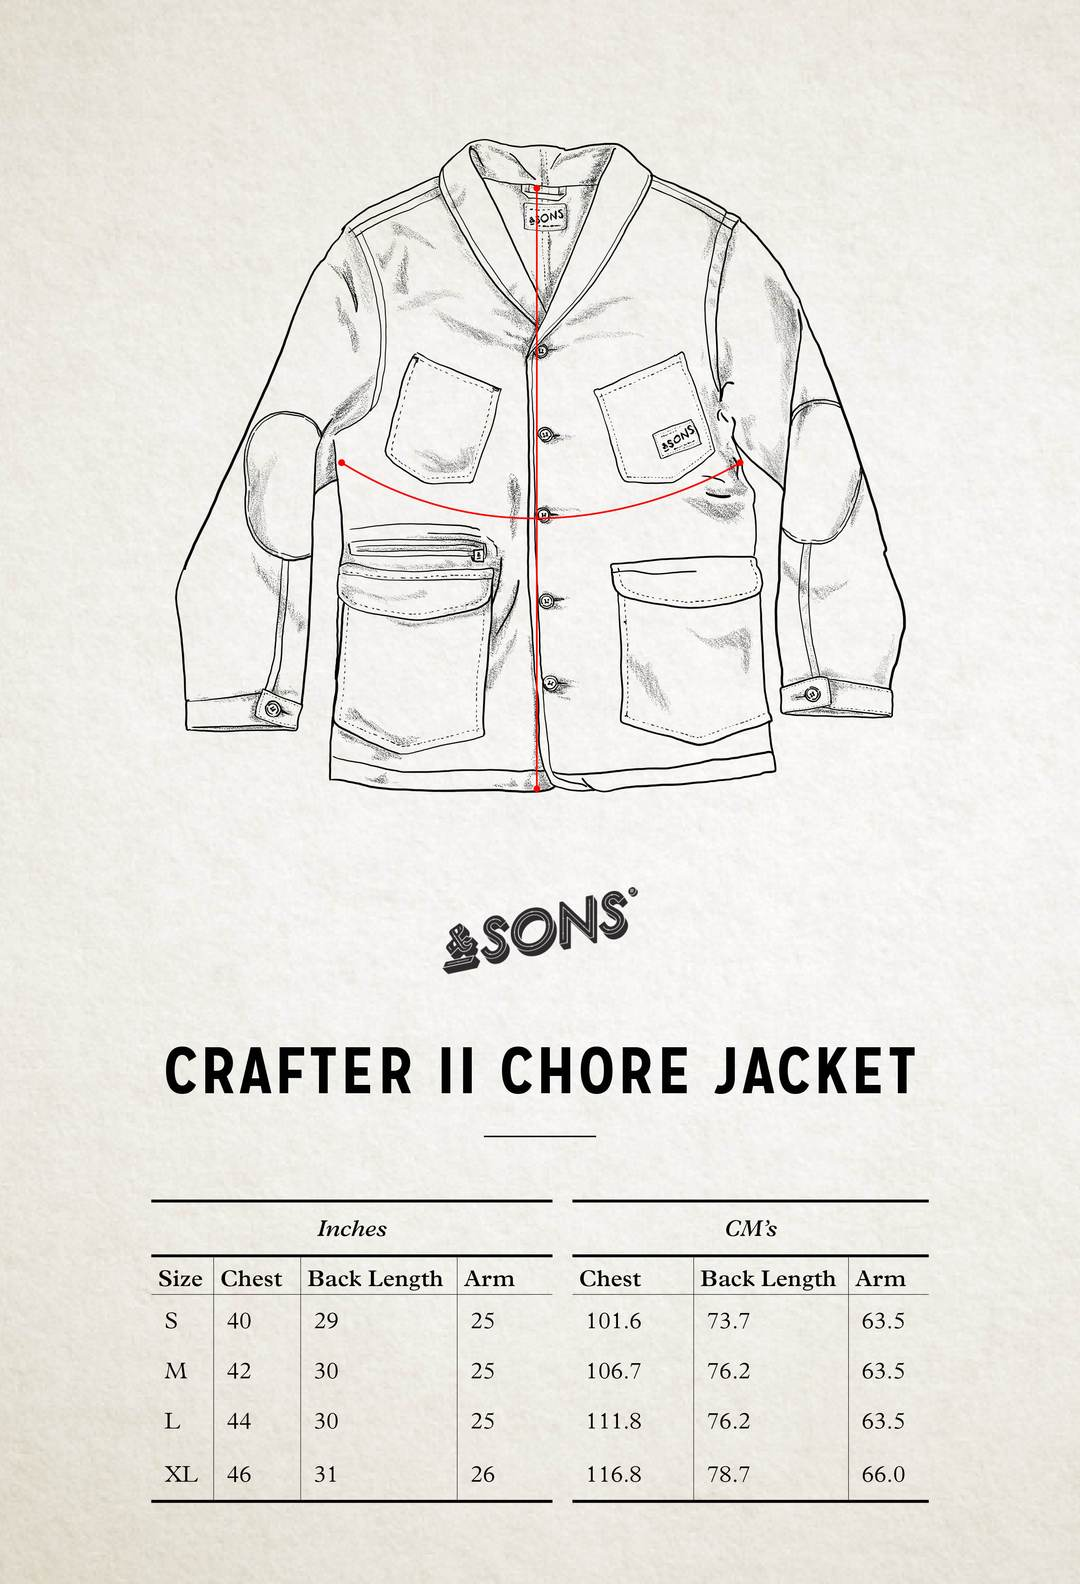 &SONS Crafter II Chore Jacket Size Chart